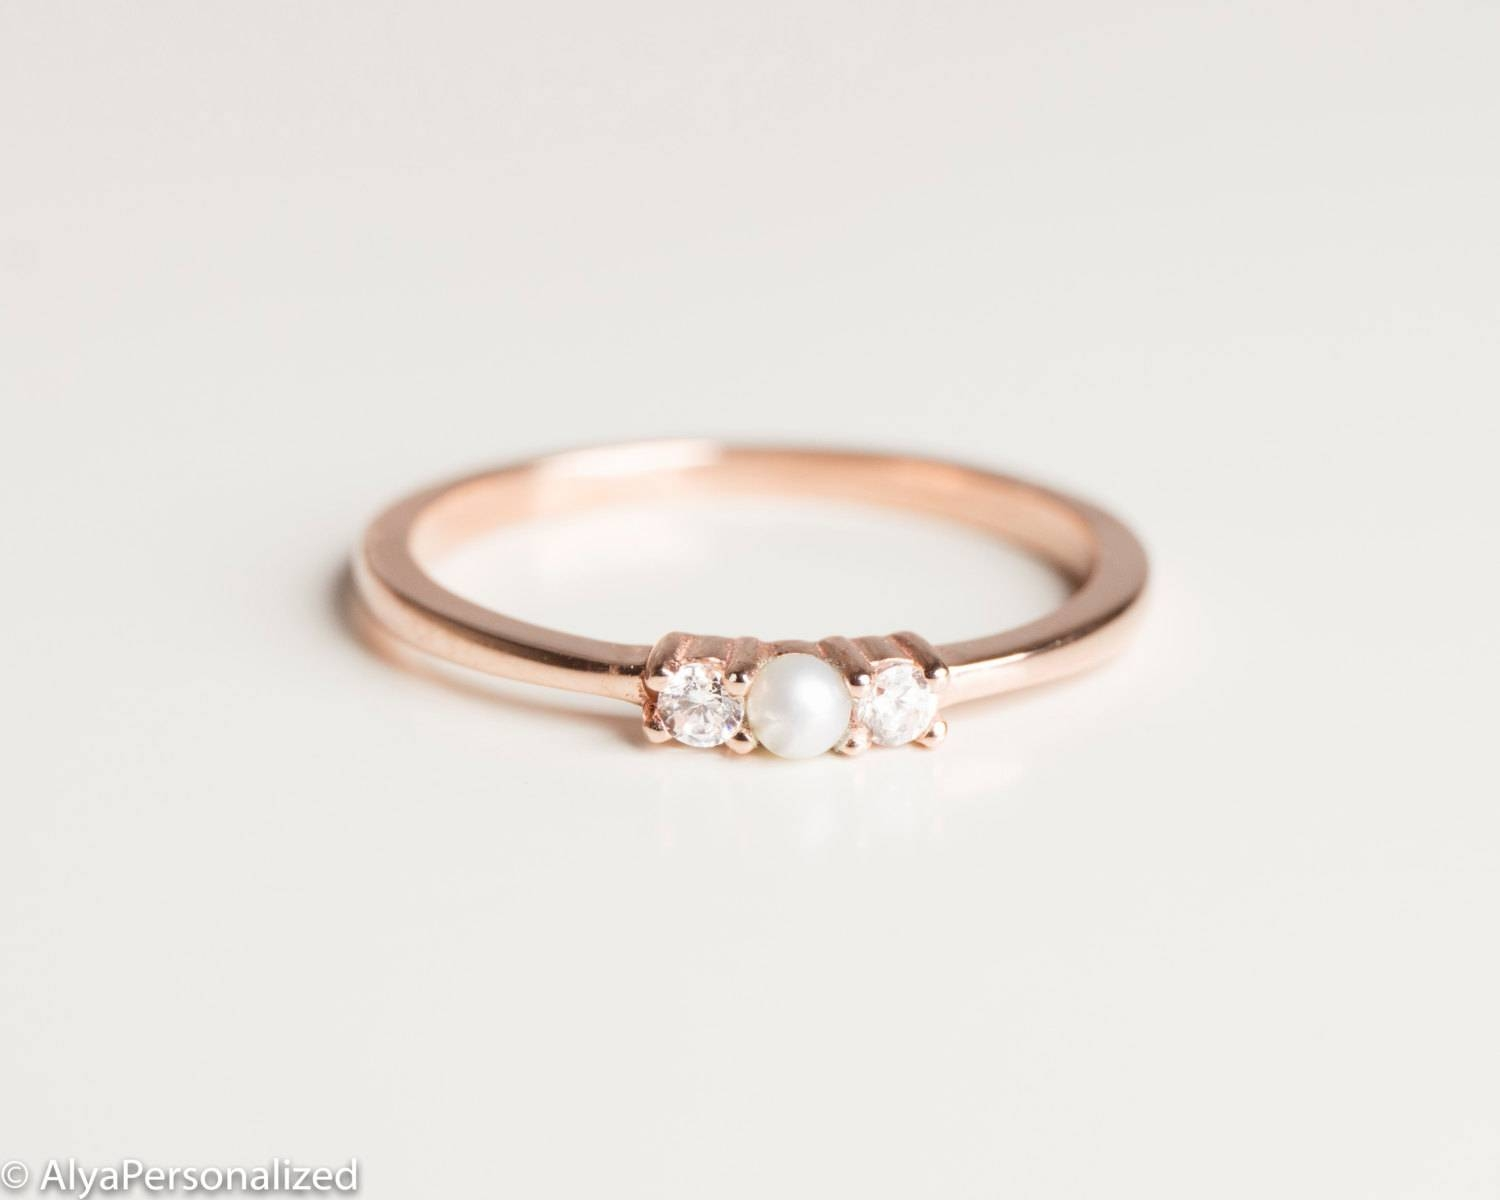 Anniversary Ring Simple Ring Band Thin Rose Gold Ring Intended For Best And Newest Anniversary Rings For Women (View 5 of 25)